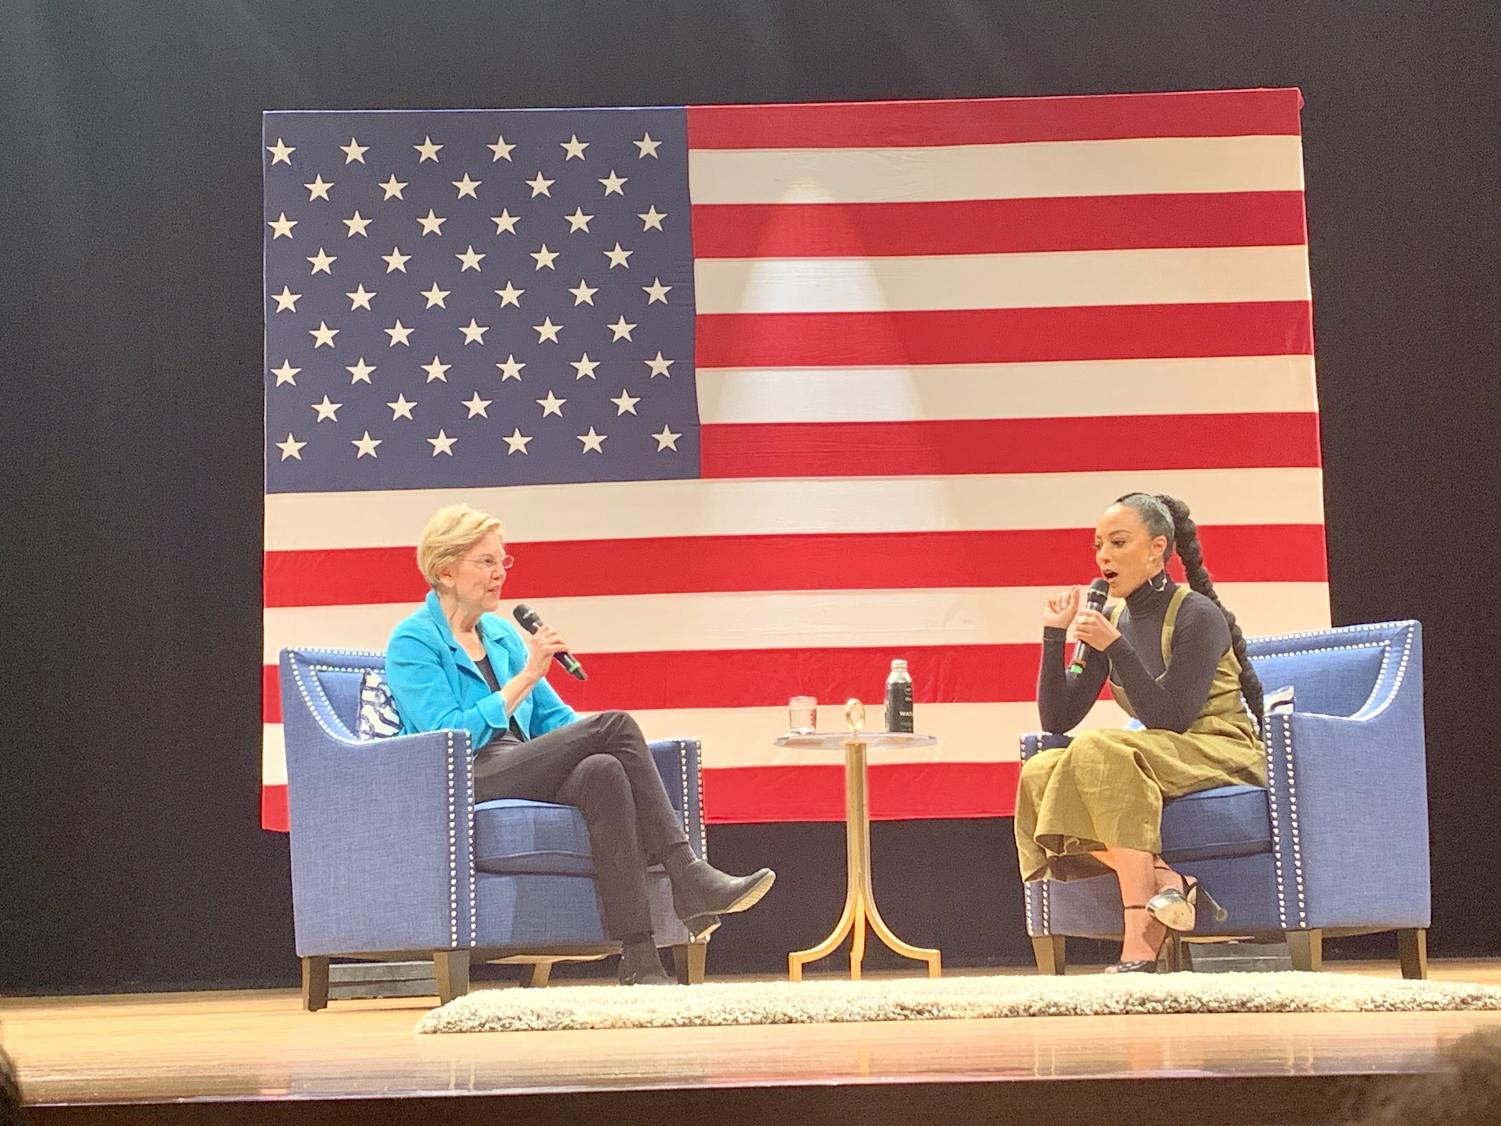 Rye and Warren discuss HBCUs